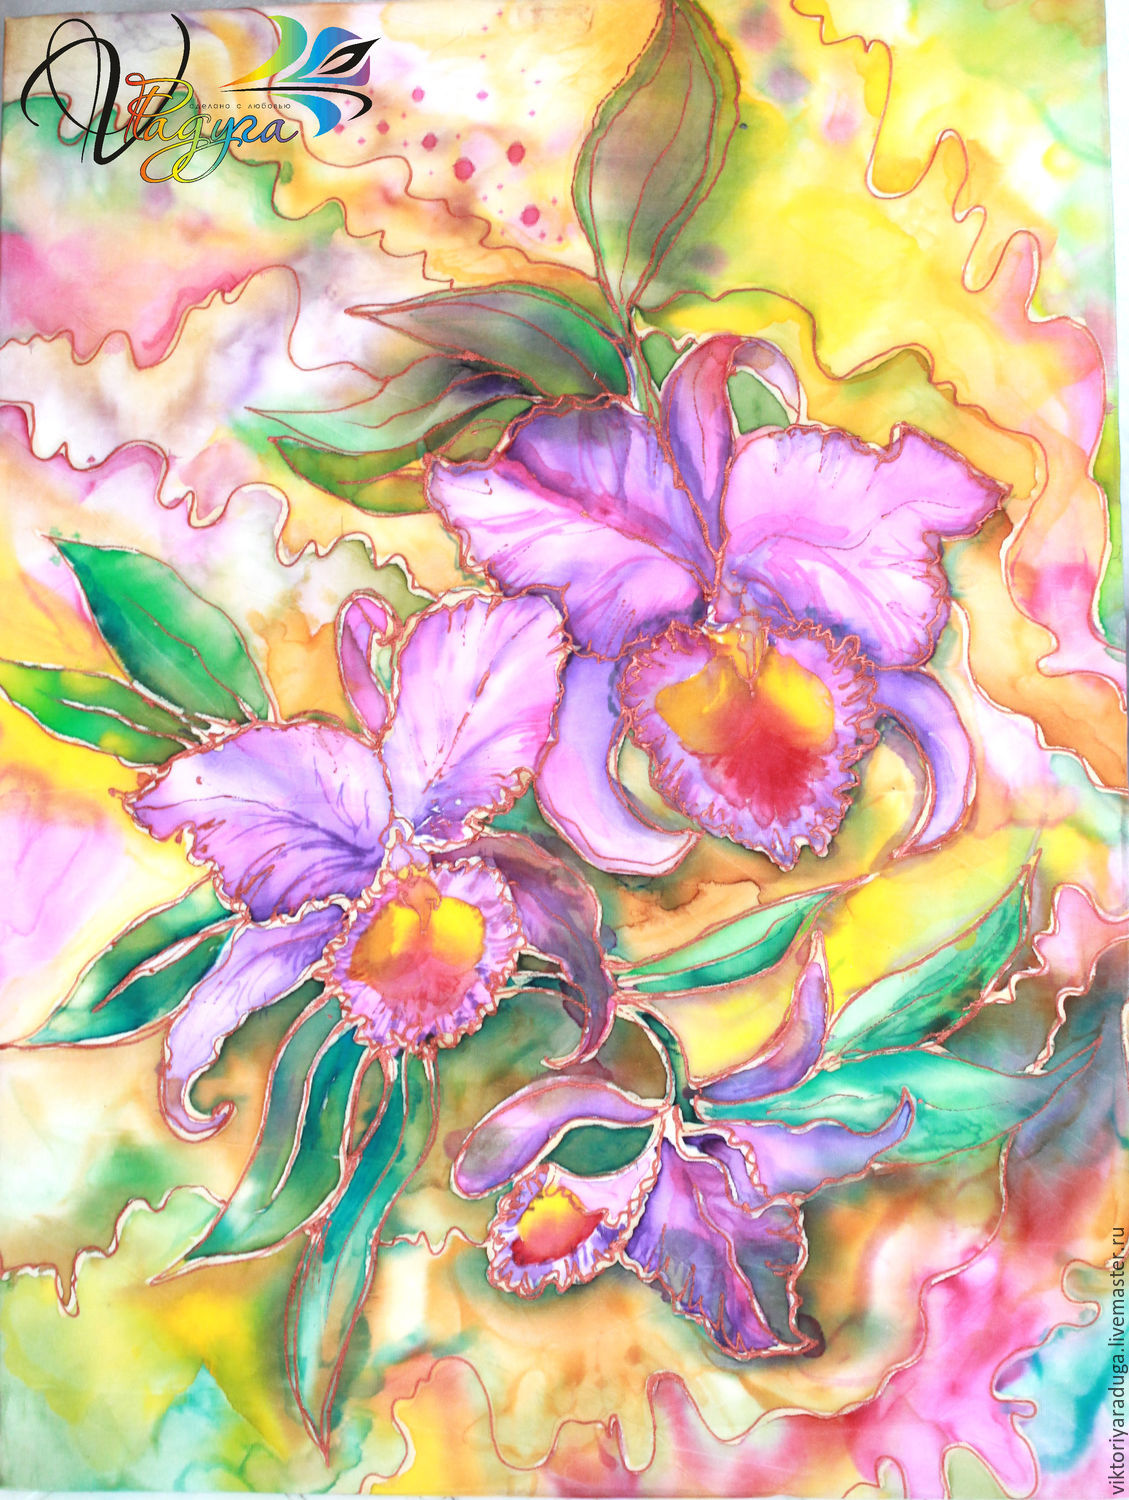 Orchid, Studio rainbow, Victoria, batik painting, batik painting, orchids, Orchid painting, Orchid gift, painting gift, batik as a gift, a gift to his beloved, a gift to a woman, gift girl